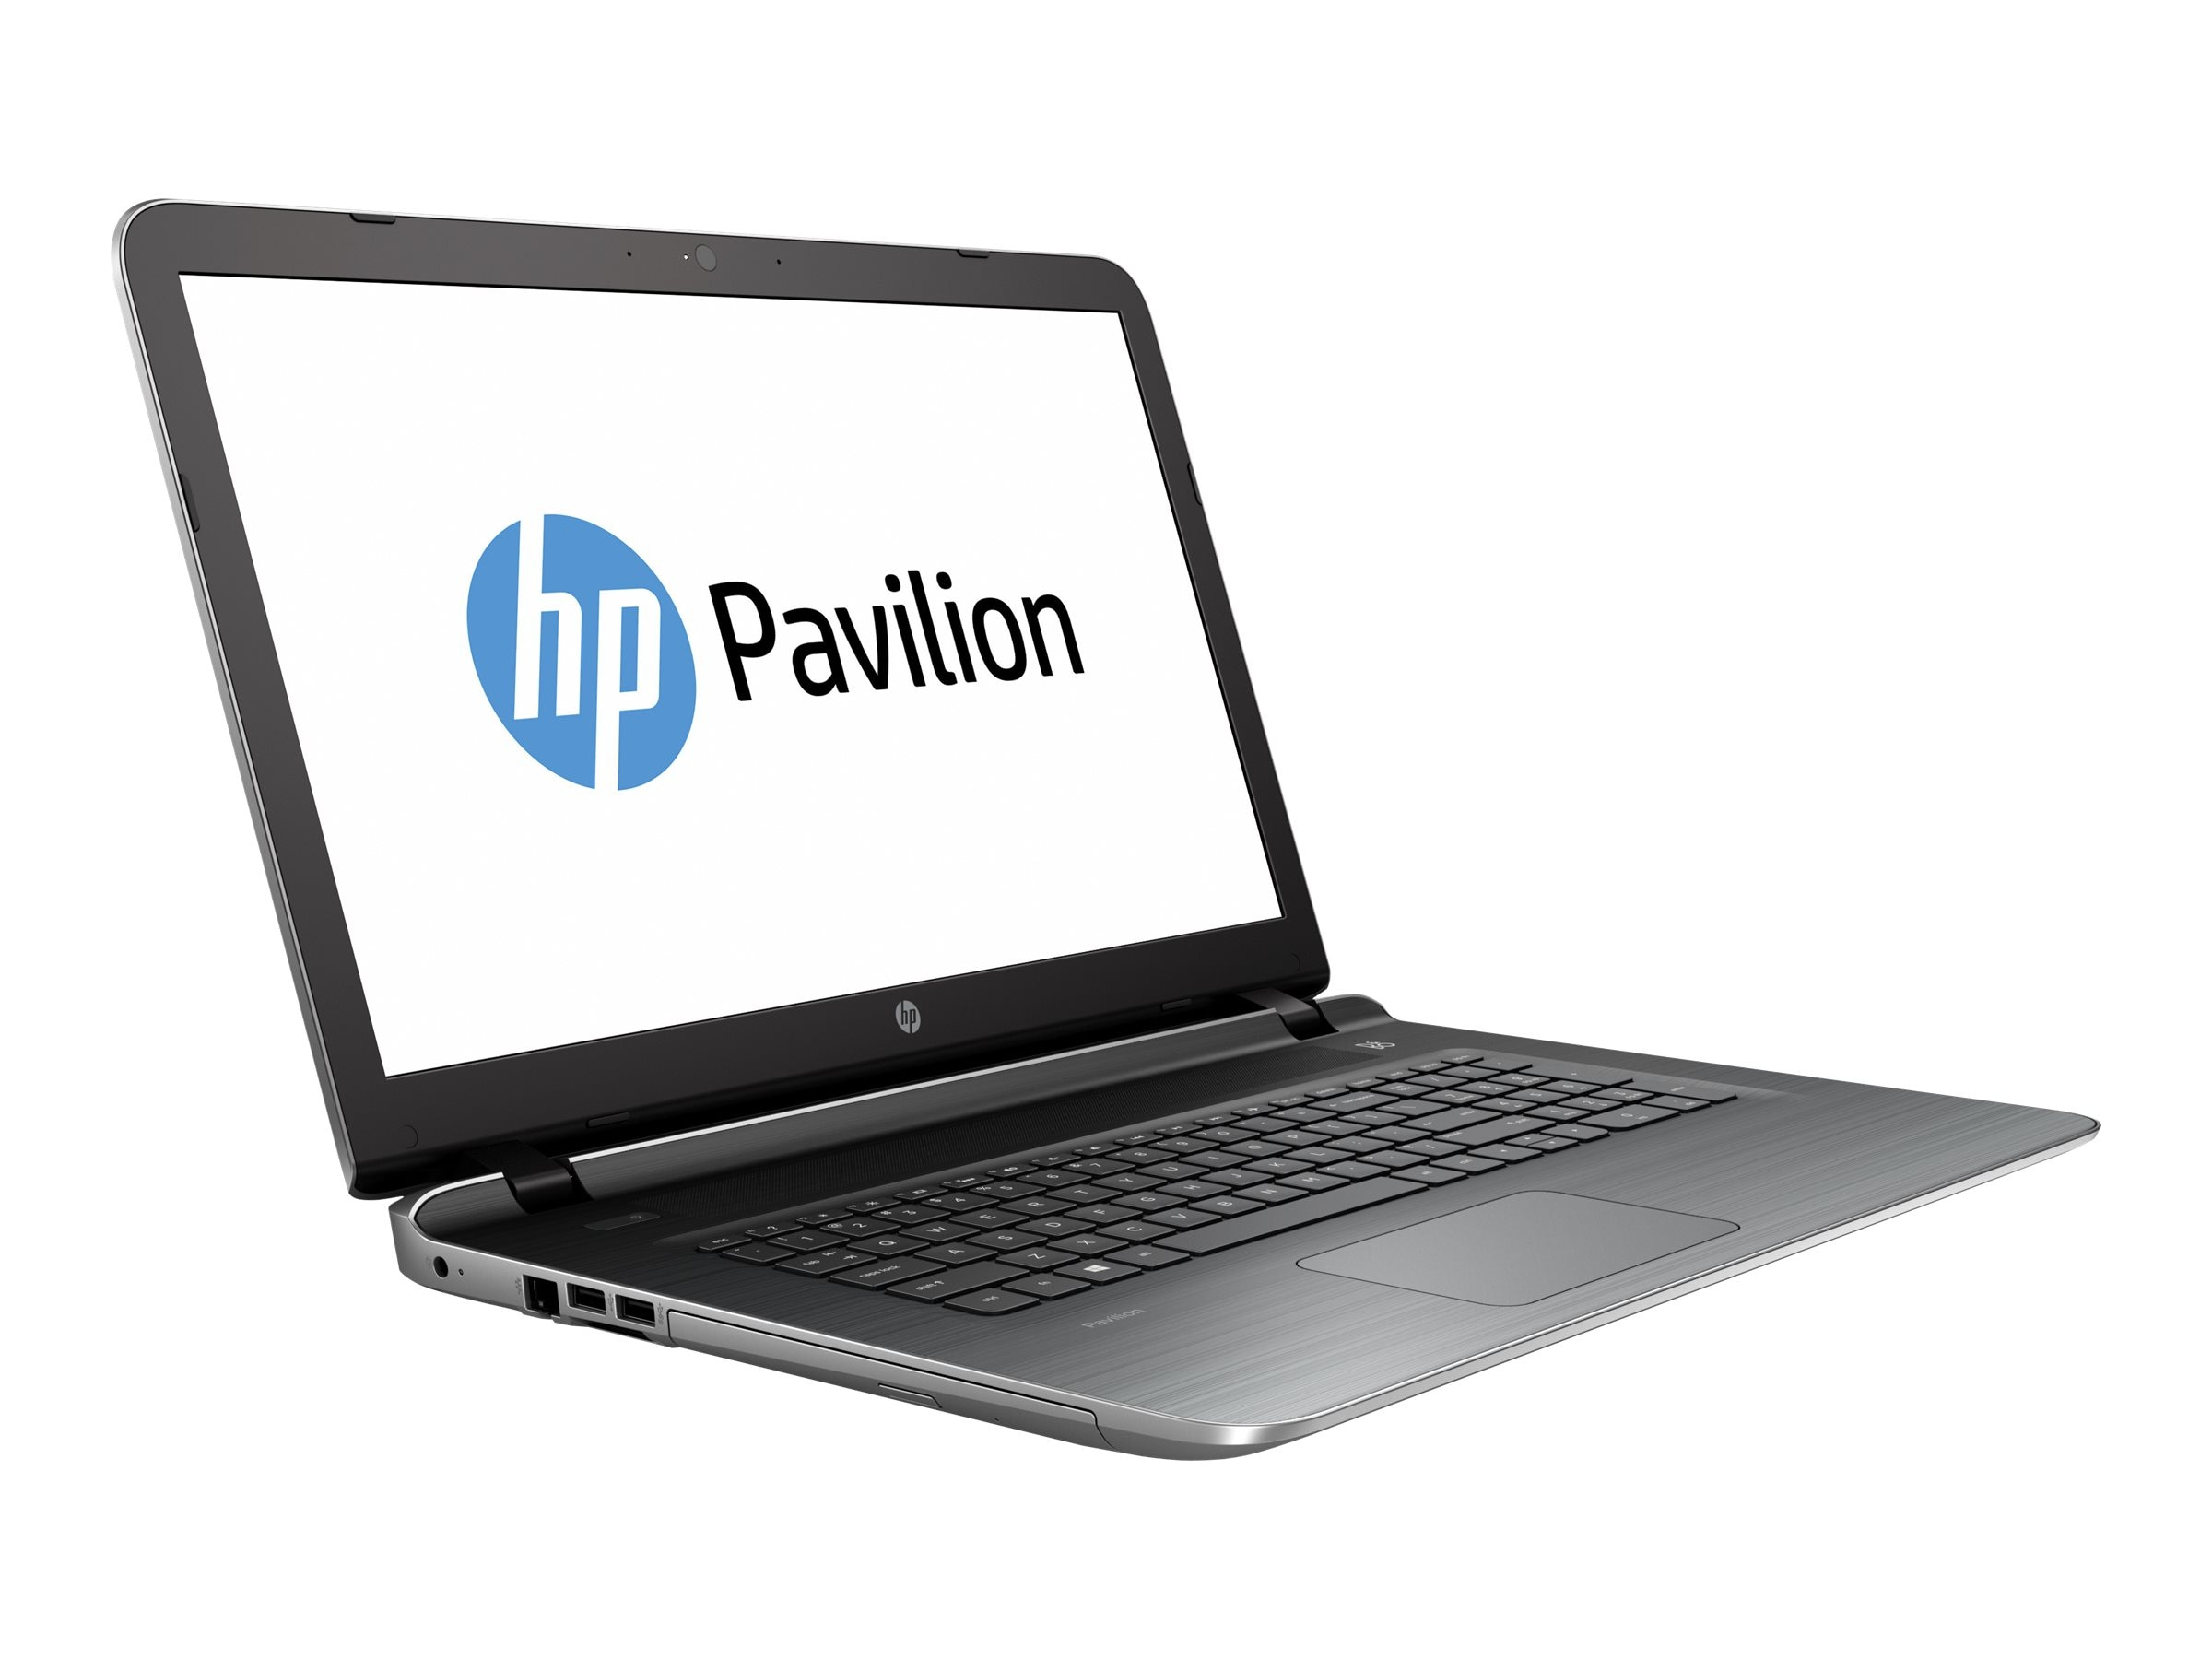 HP Pavilion 17-G163nr Notebook PC, P1A70UA#ABA